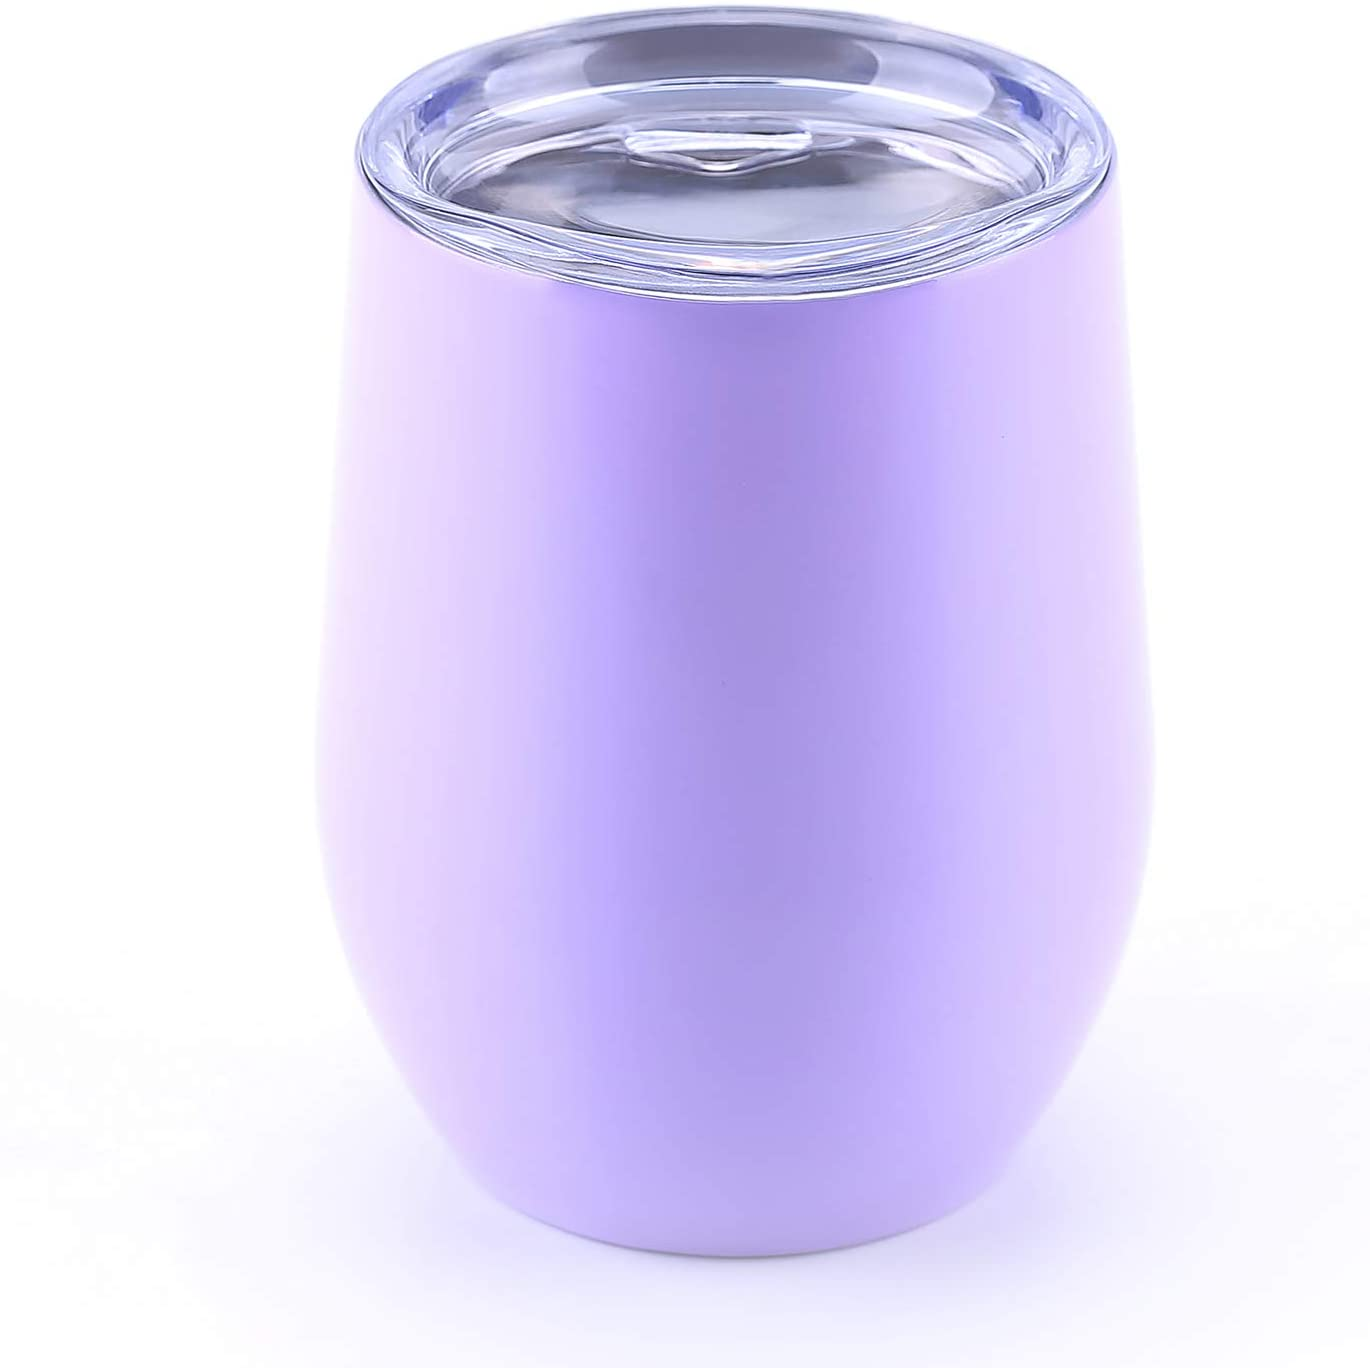 WBRWP 12oz Coffee Cup with Lid : Double-Vacuum Insulated Stainless Steel Stemless-Light Purple